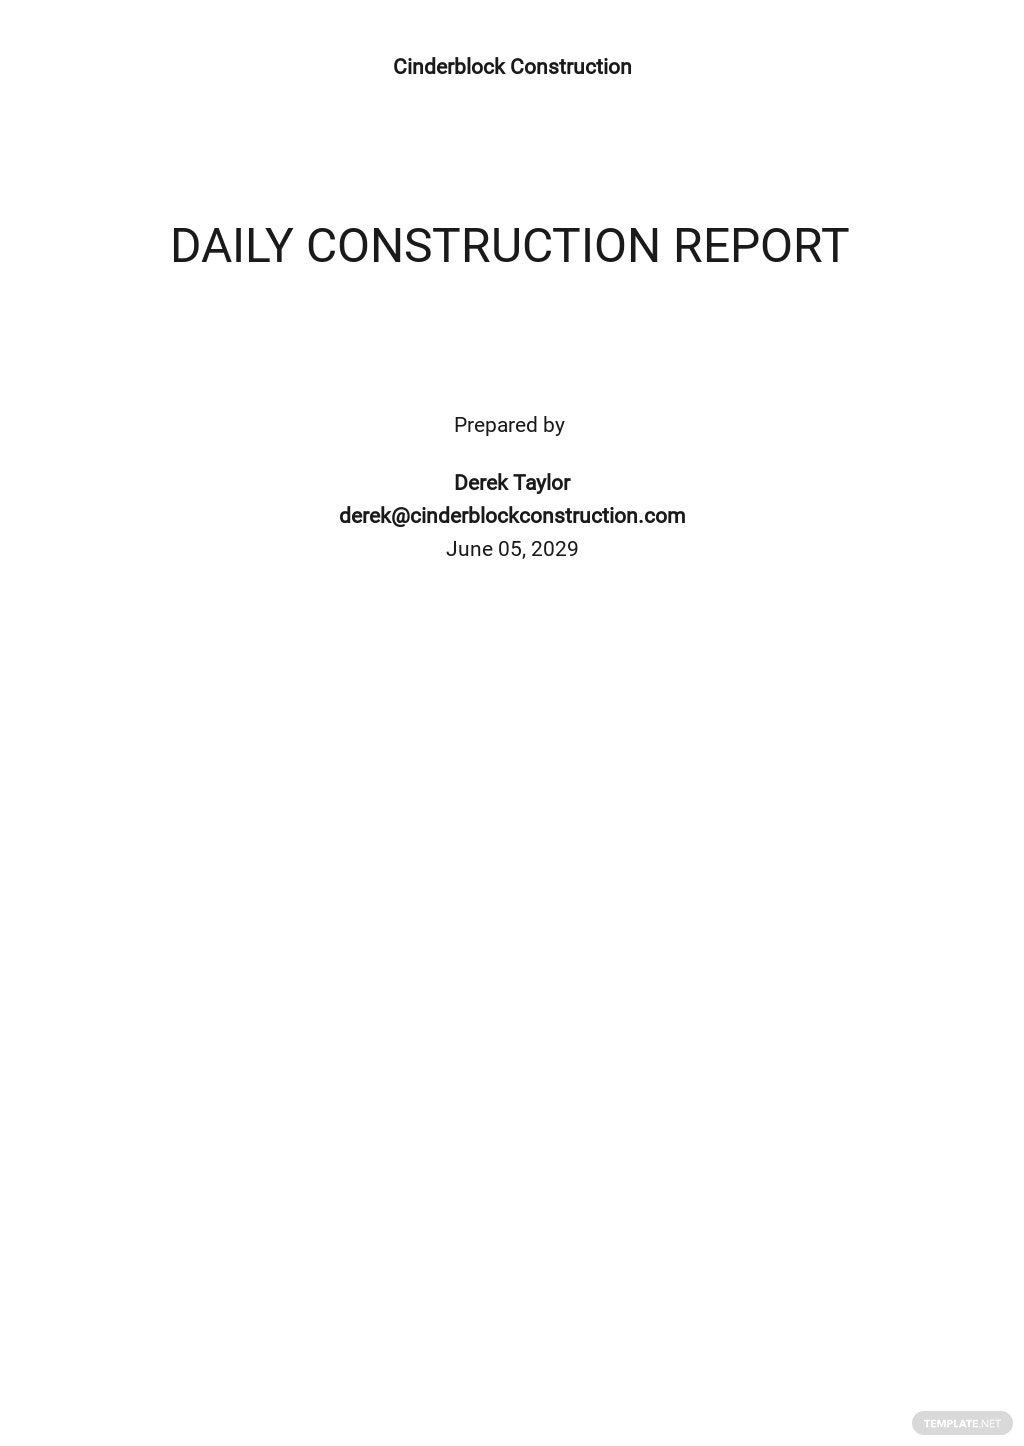 Daily Construction Report Sample.jpe